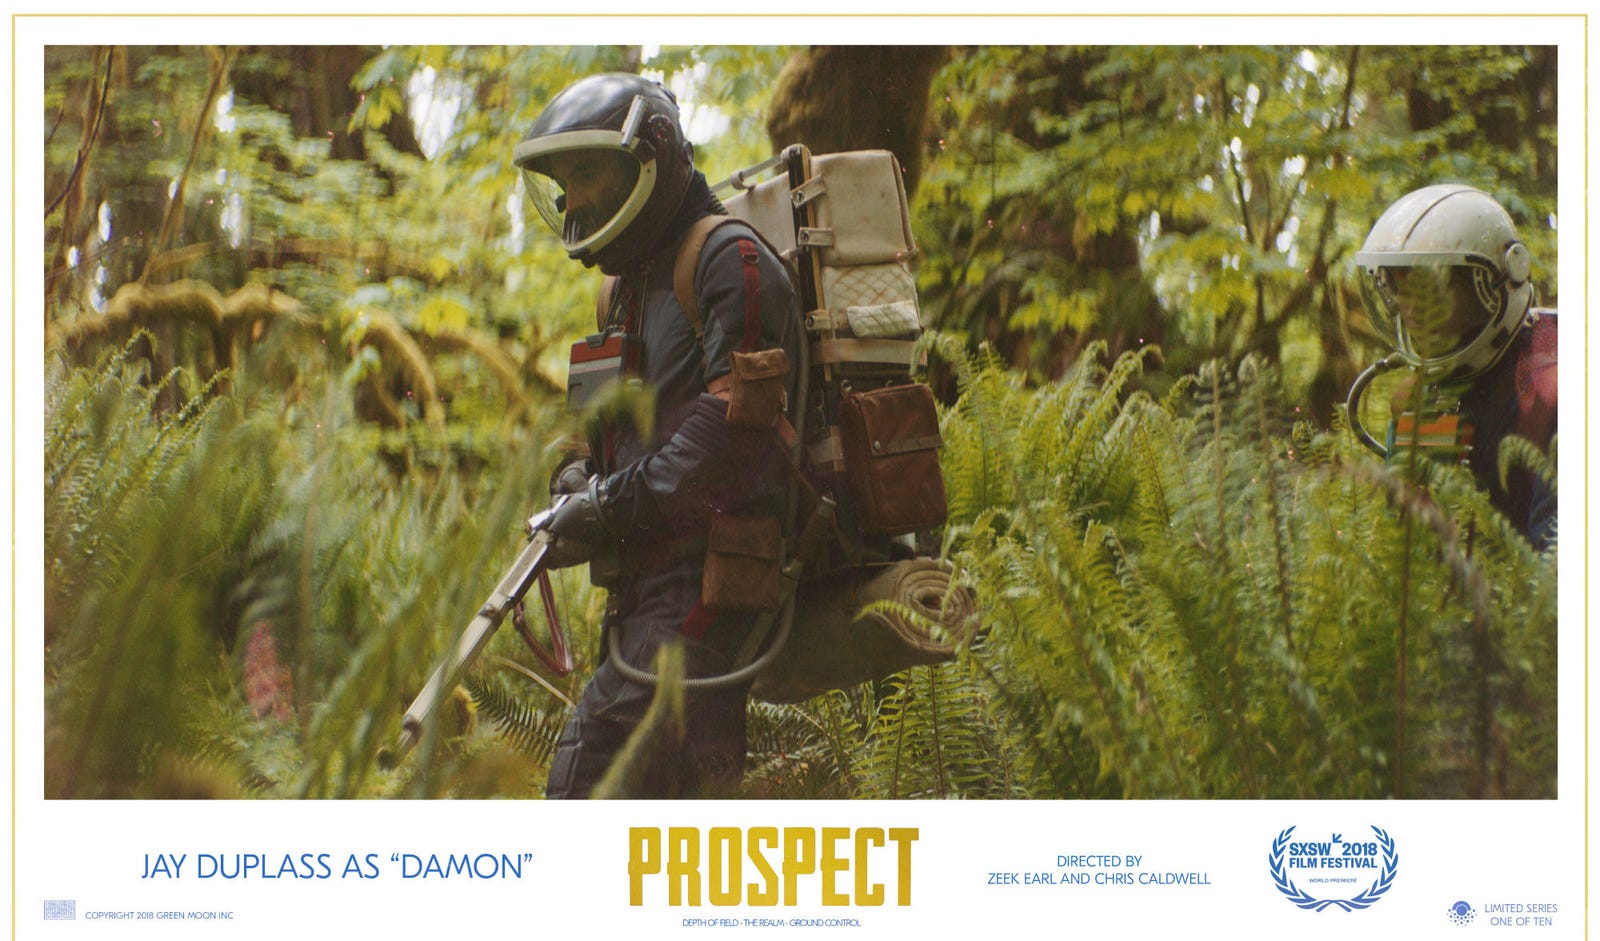 Jay Duplass as Damon in Prospect.